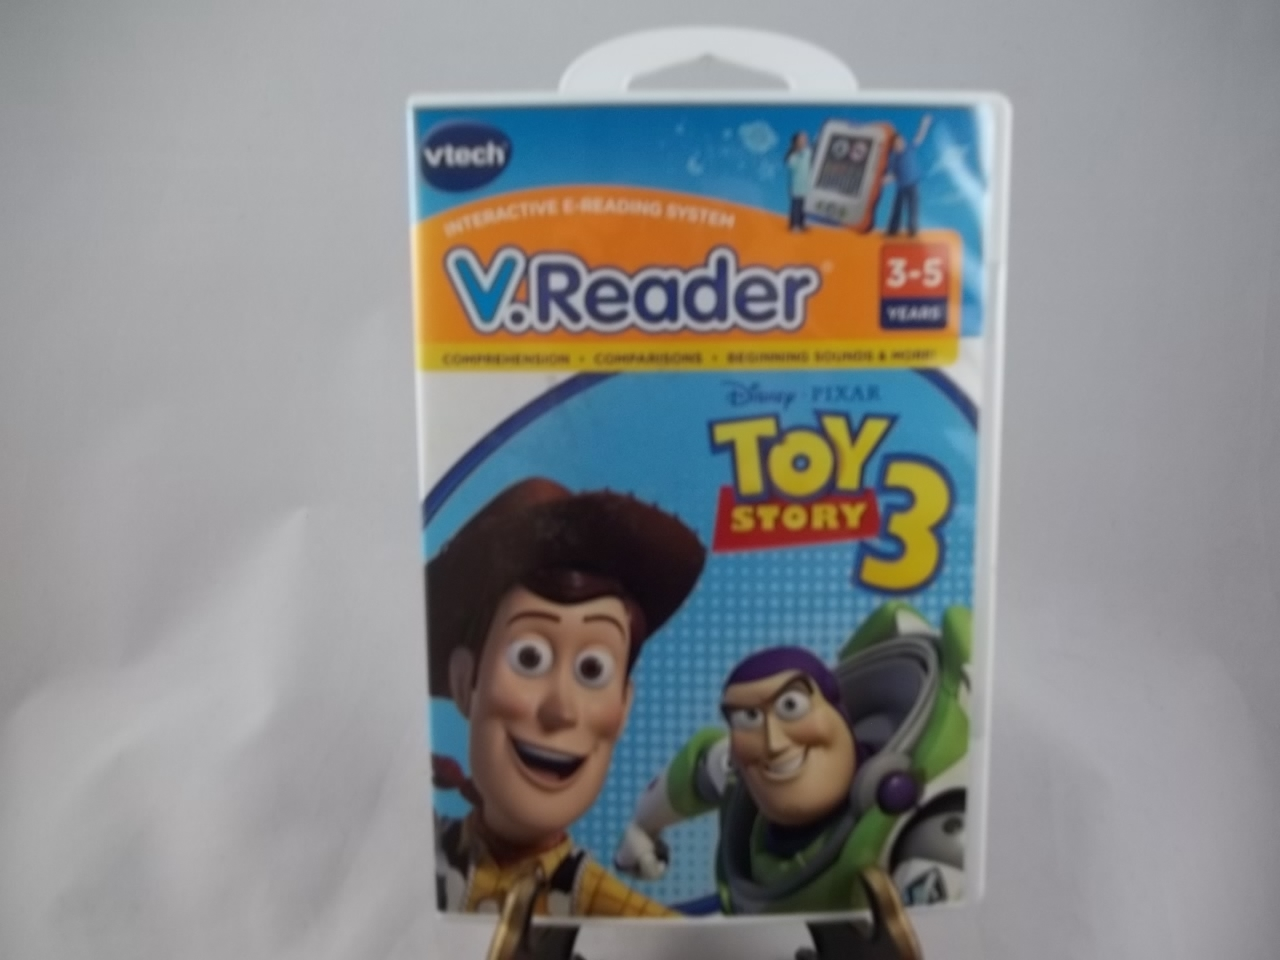 Primary image for Vtech V.Reader Toy Story 3 Interactive E-Reading System - Ages: 3-5 Years-NEW